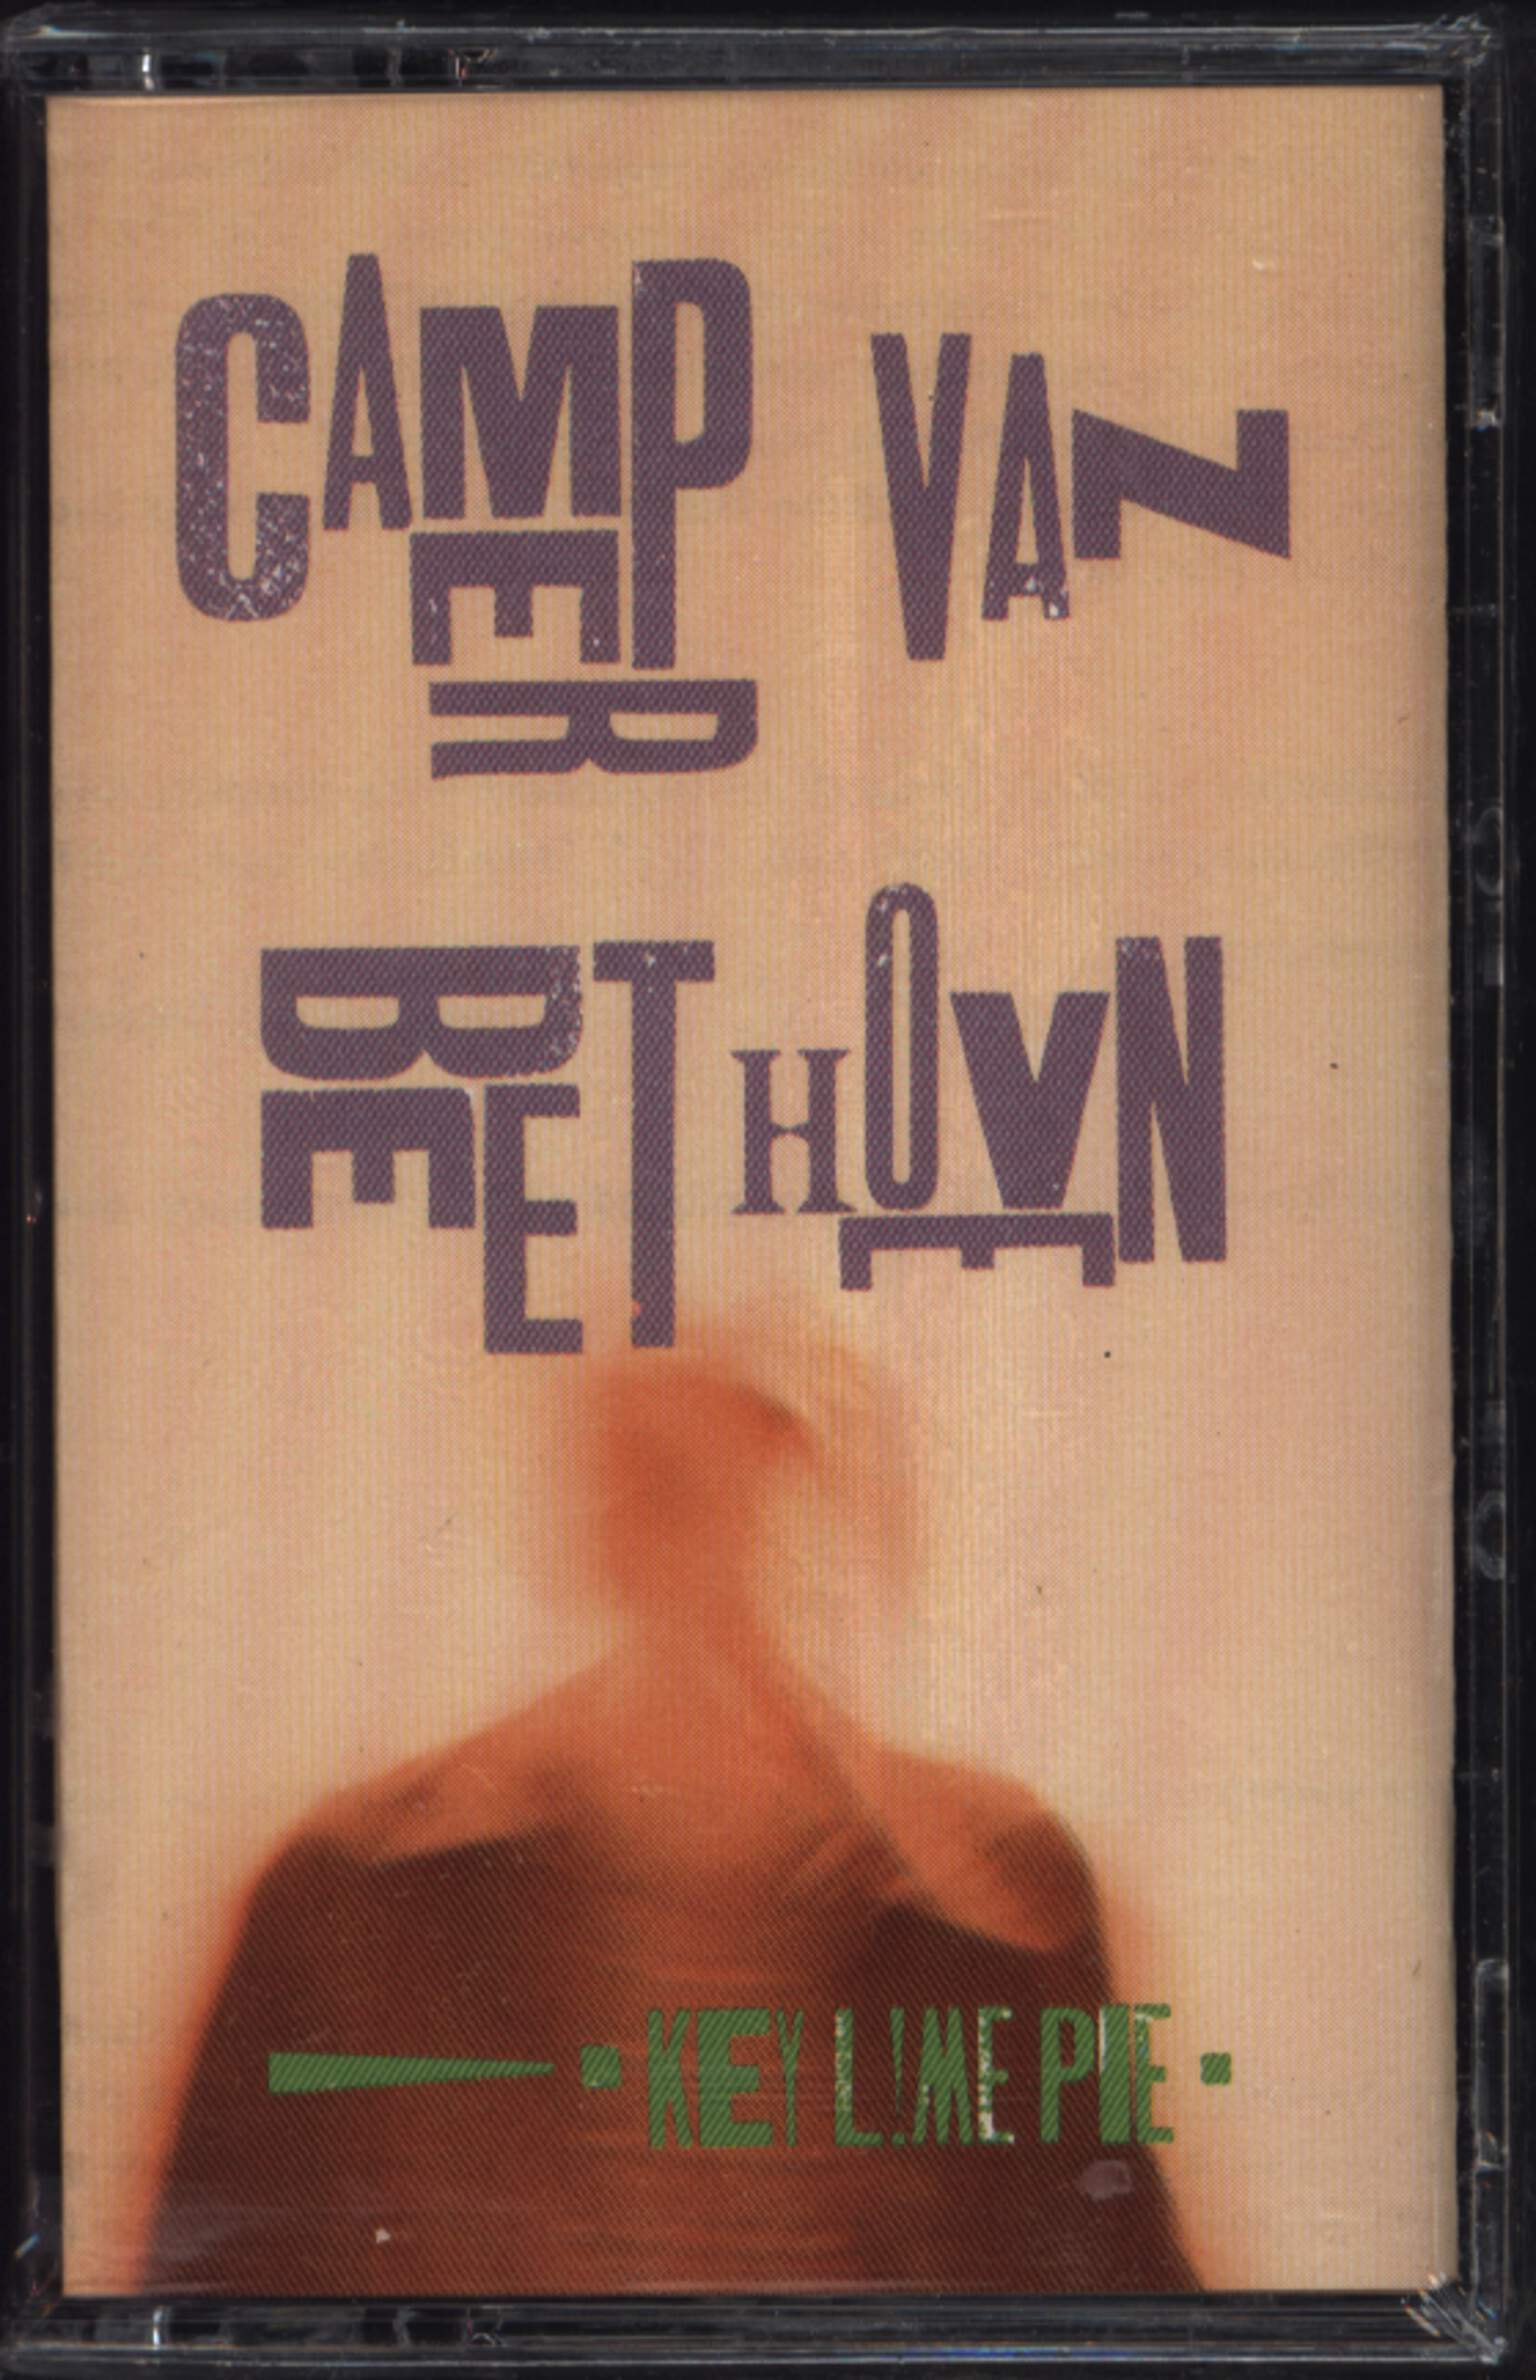 Camper Van Beethoven: Key Lime Pie, Compact Cassette